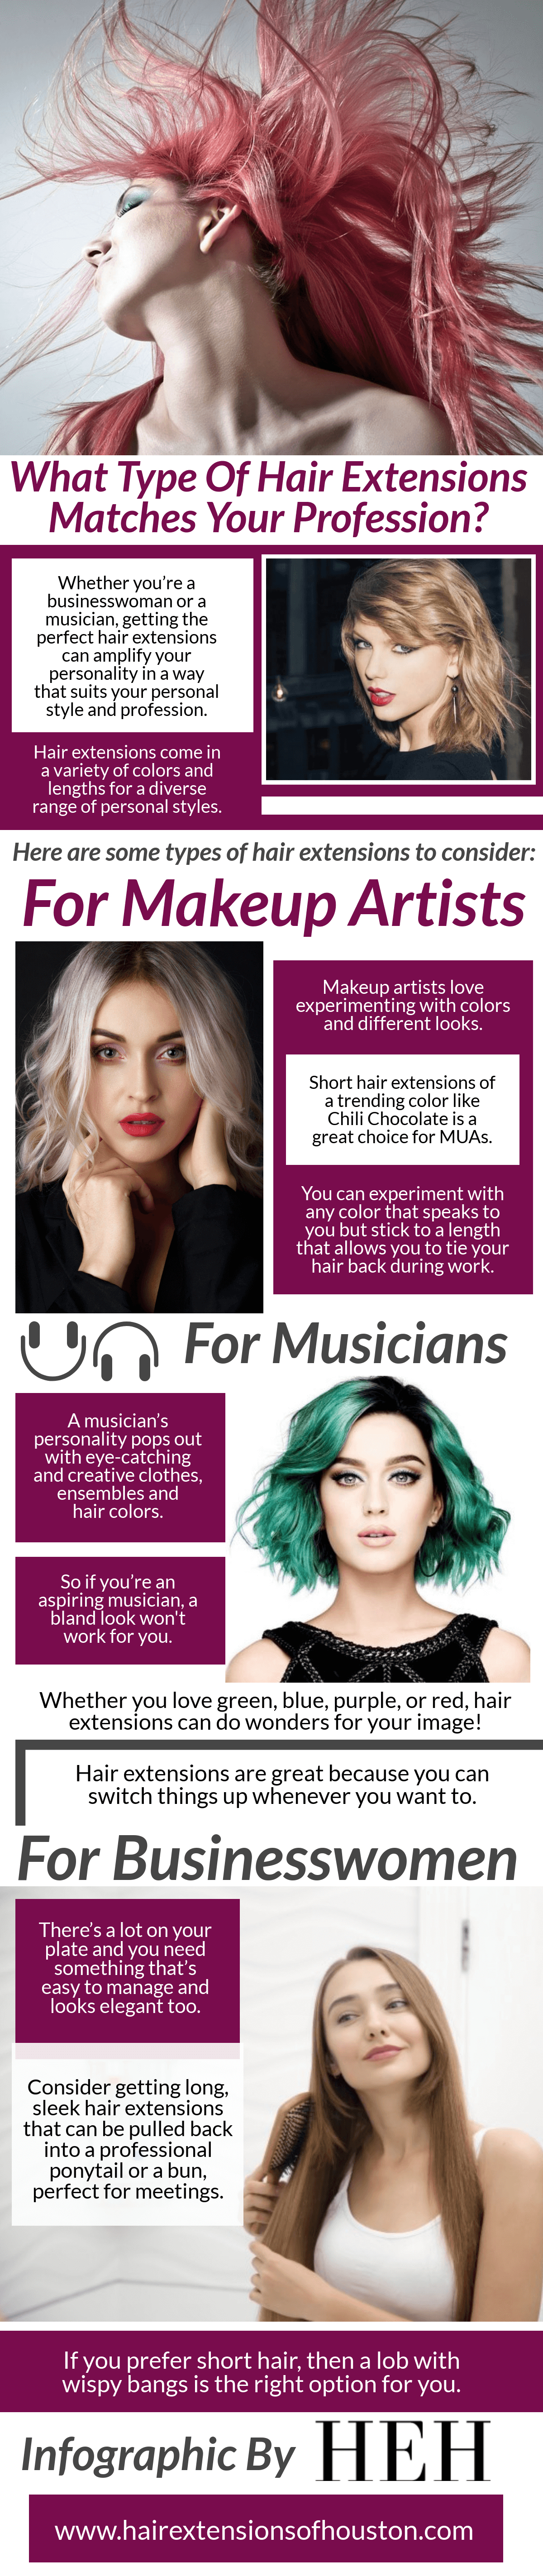 Types Of Hair Extensions Matches Your Profession